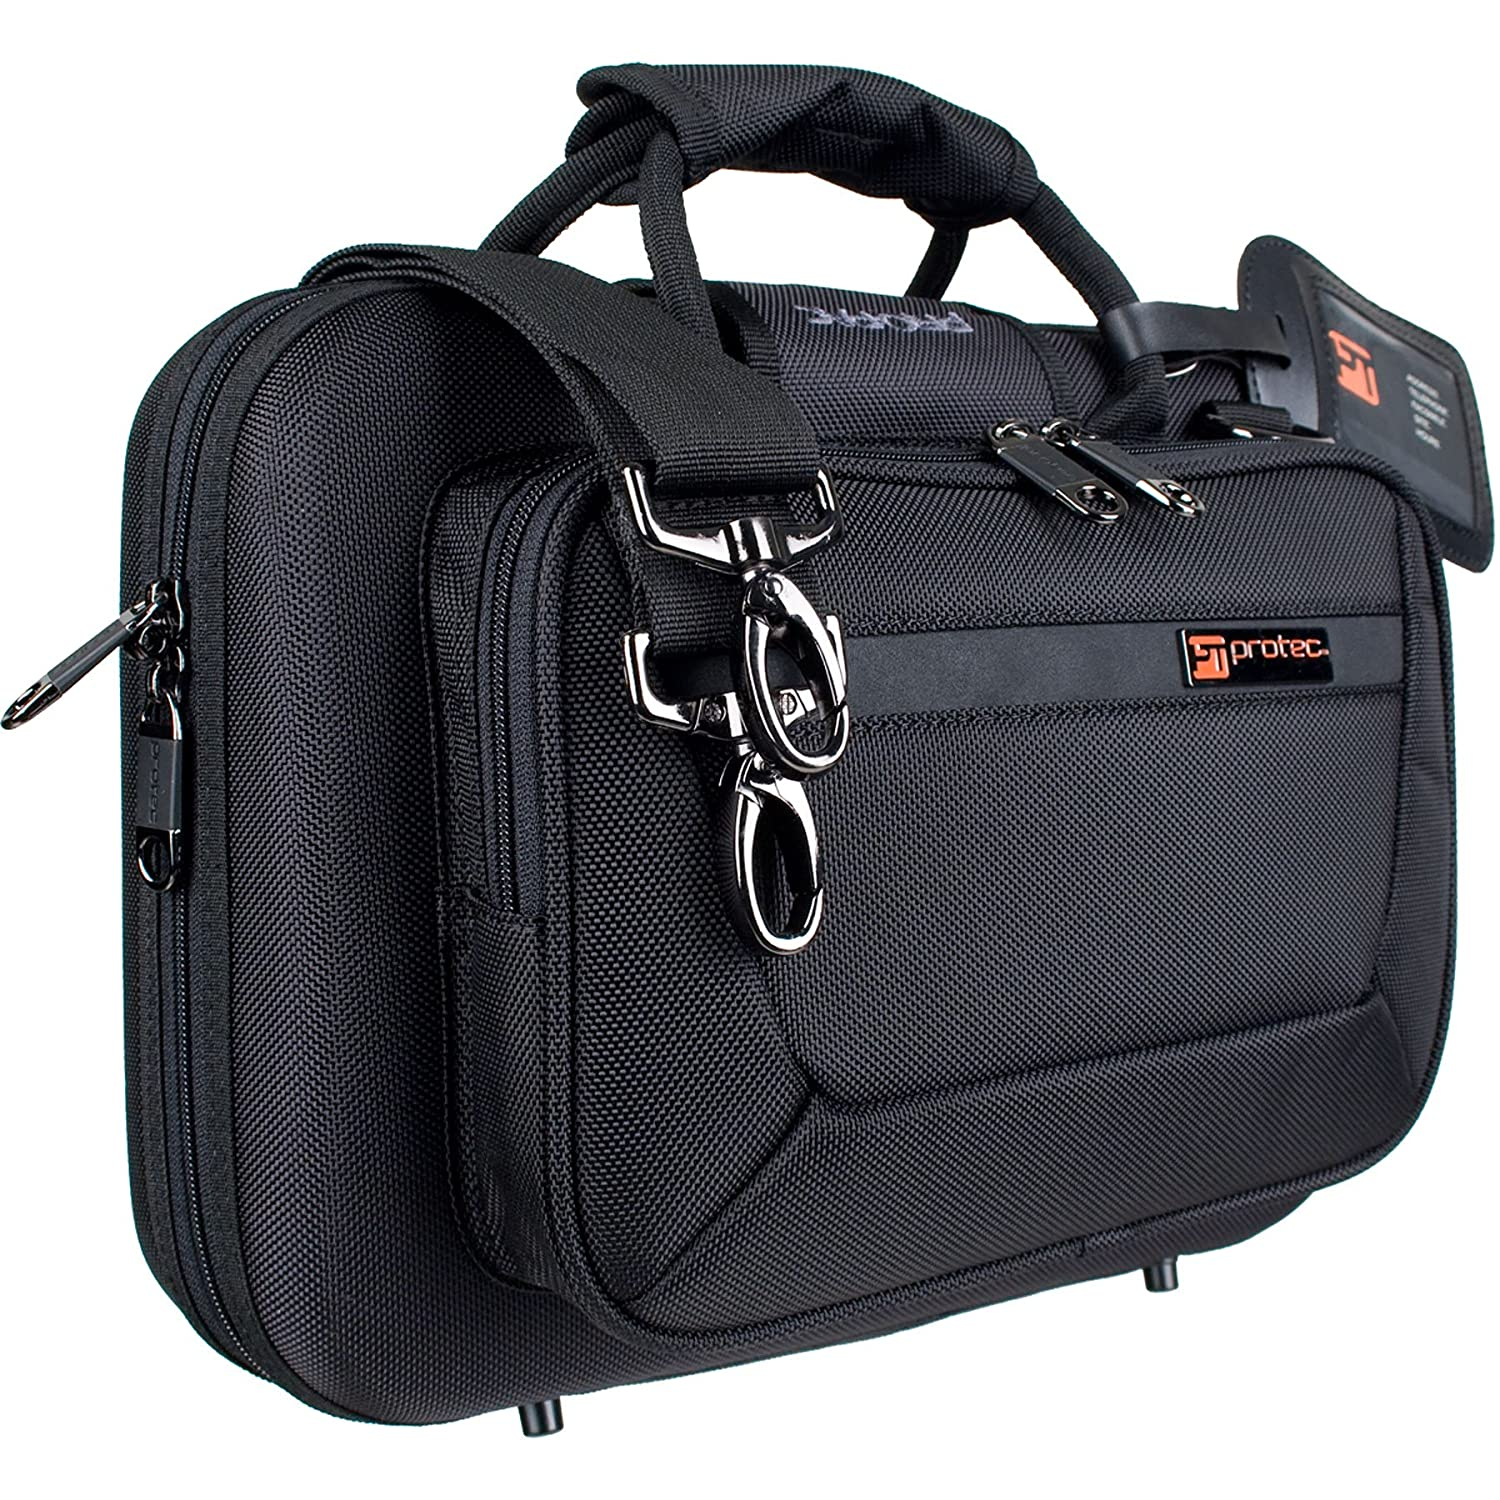 Protec PB307GER German Clarinet Case